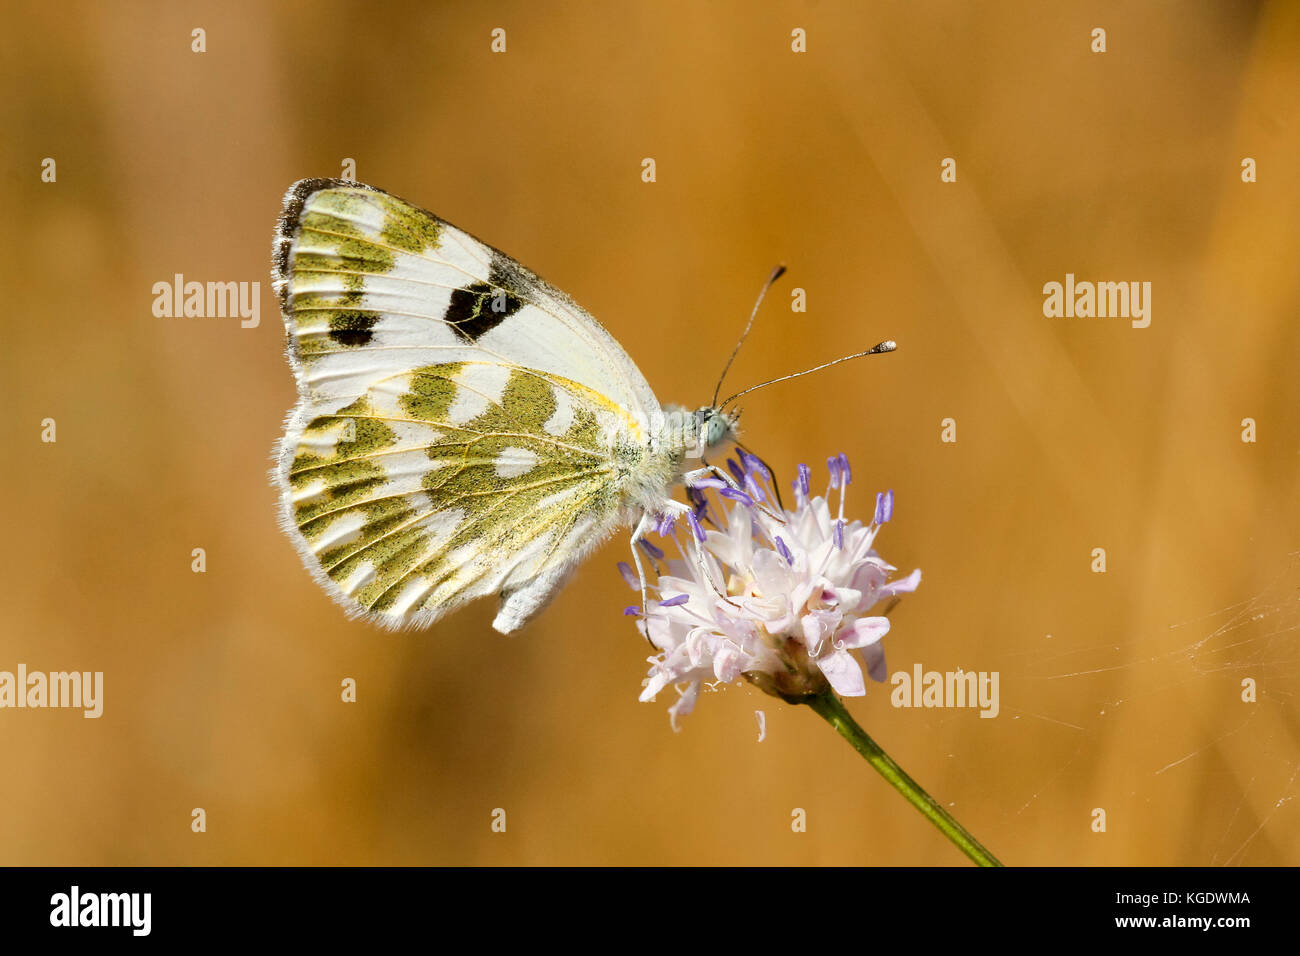 Bath White Pontia daplidice Butterfly  shot in Israel, Summer June - Stock Image